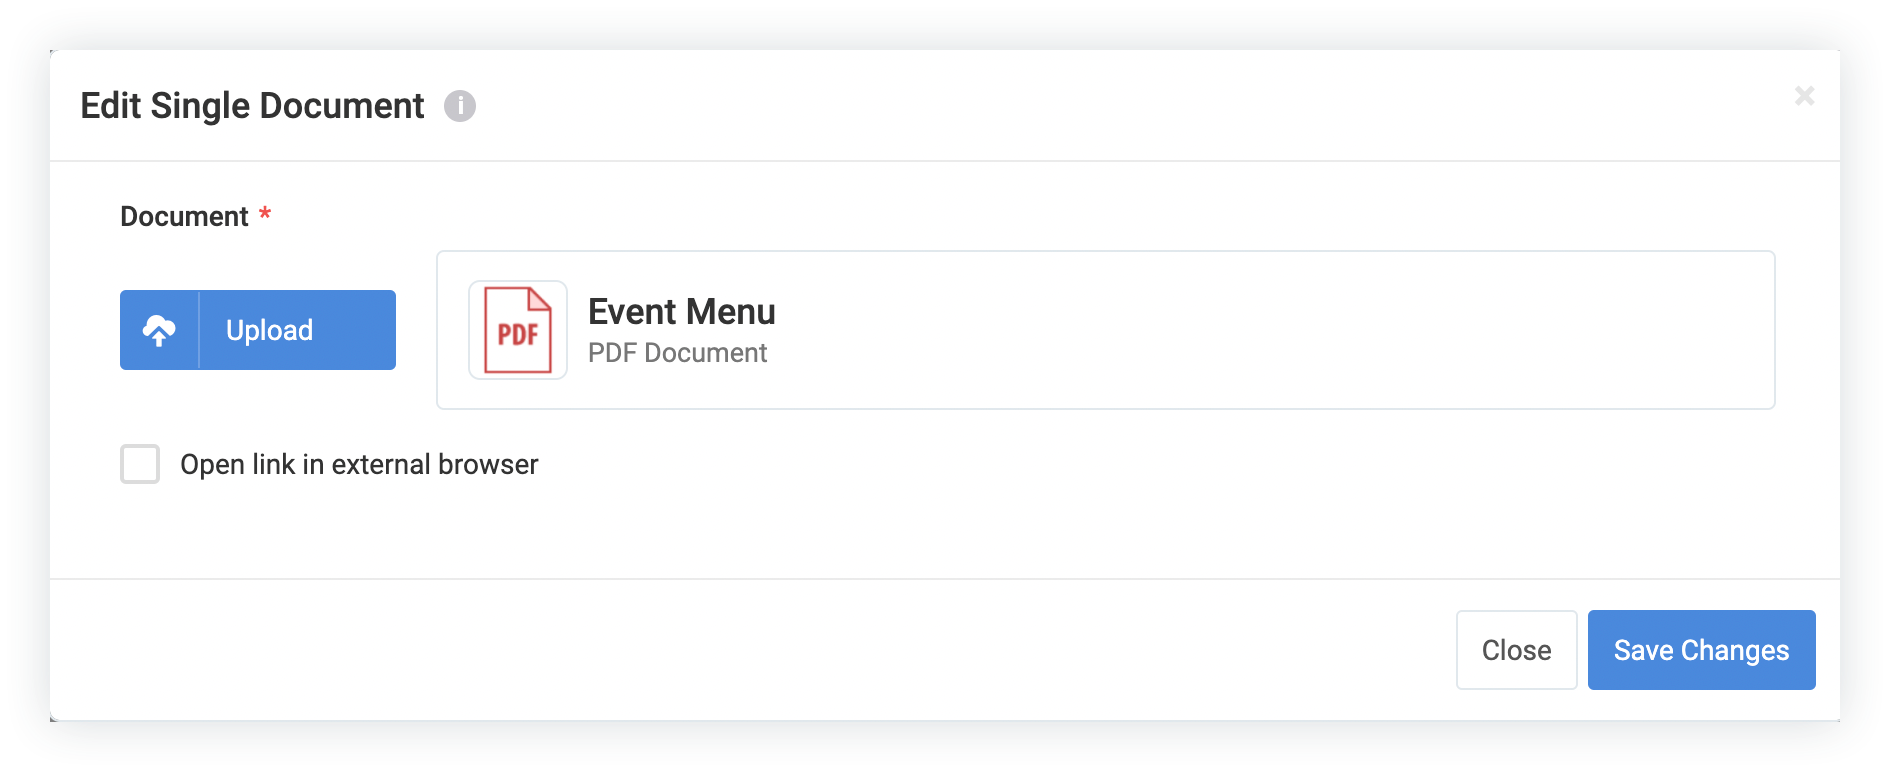 Screenshot of the Edit Single Document modal after a file has been uploaded.